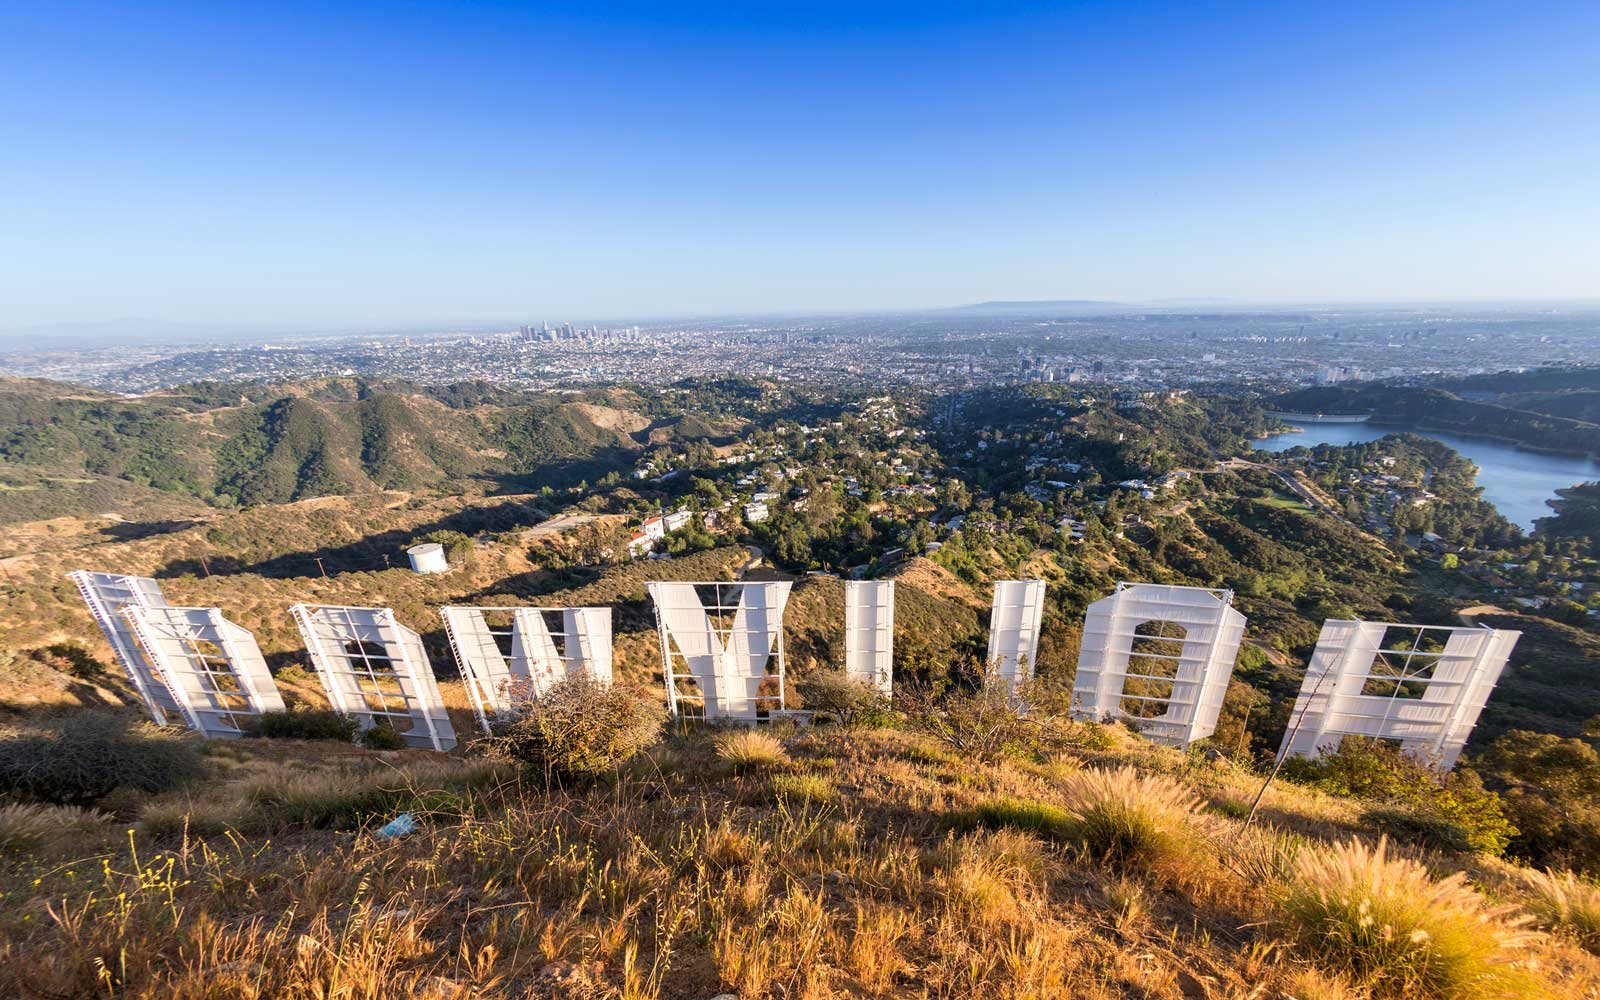 hollywood sign california tax hiking trail credit park griffith tv film access could office expanding reasonable credits says trip difficult